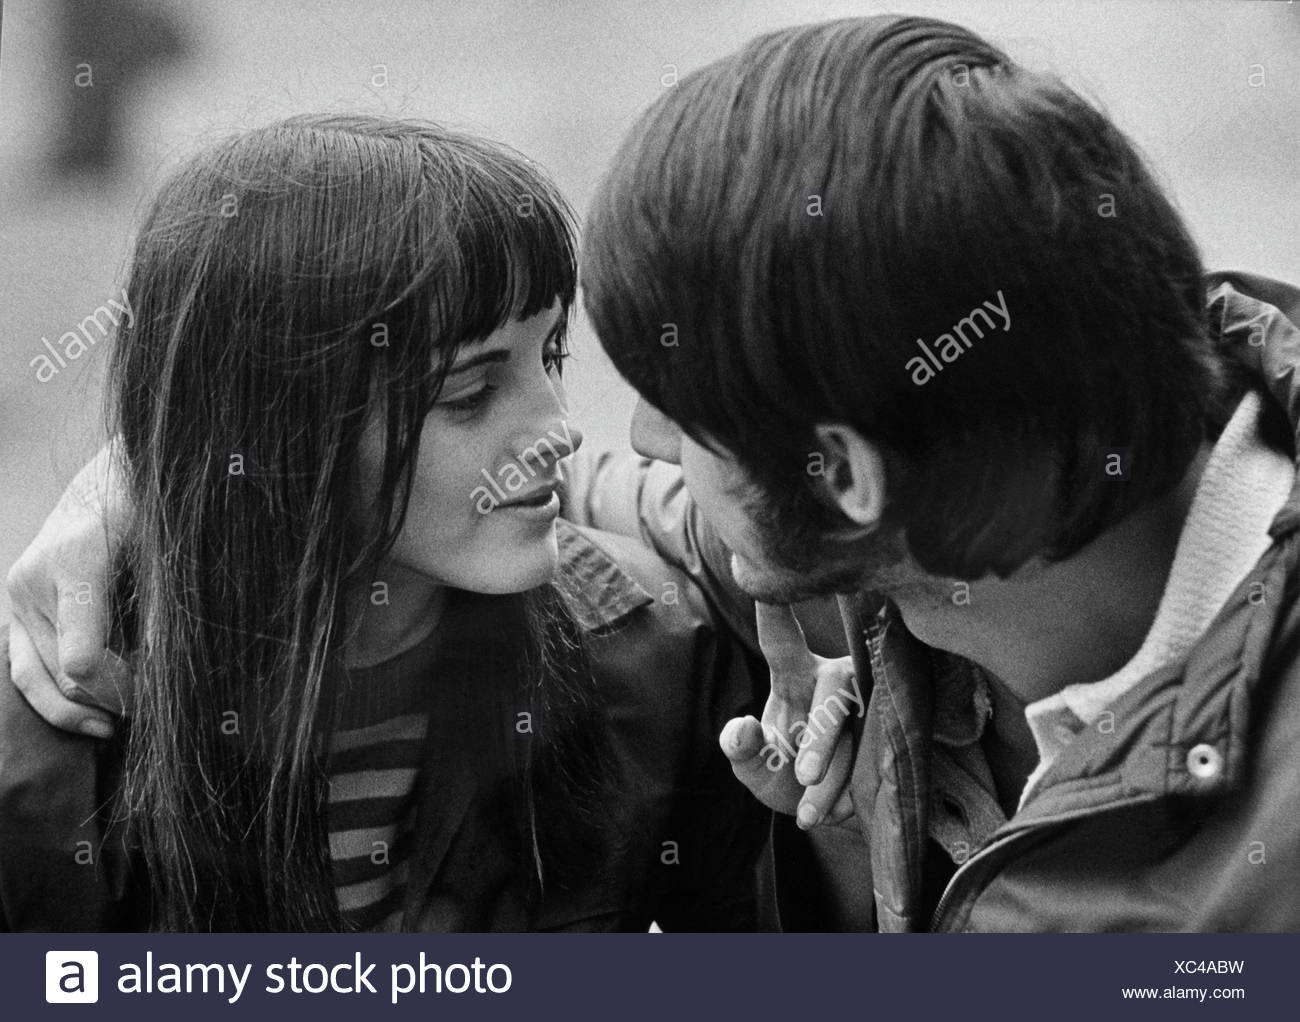 Couple, East Germany, around 1970 - Stock Image